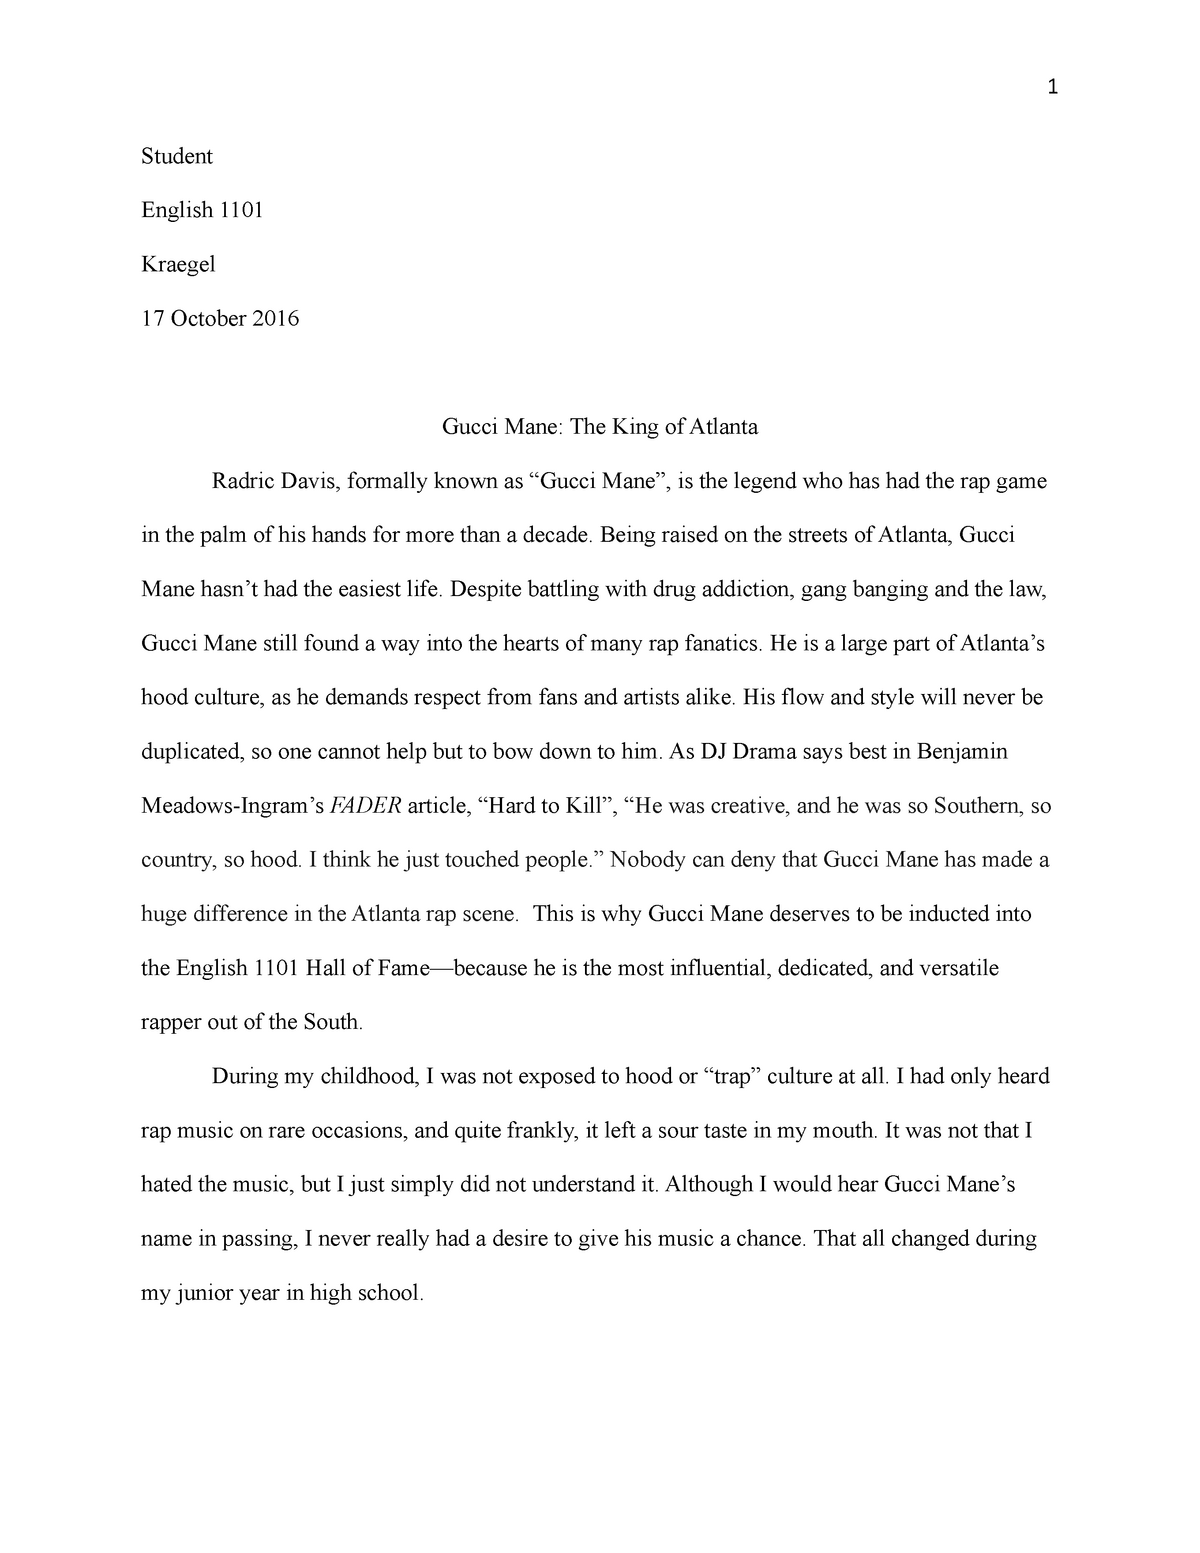 Persuasive essay with research - ENGL 1101 : Composition I